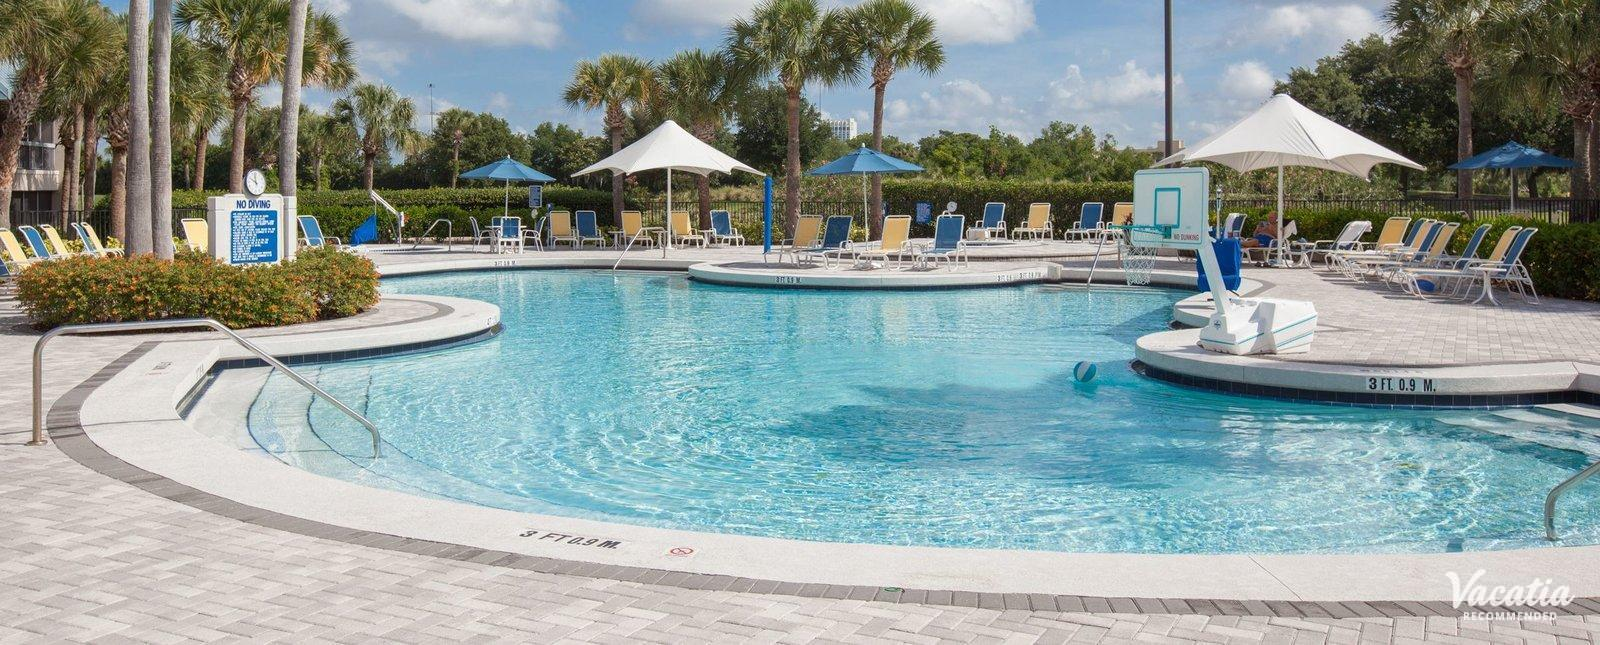 Marriott's Sabal Palms family friendly pools